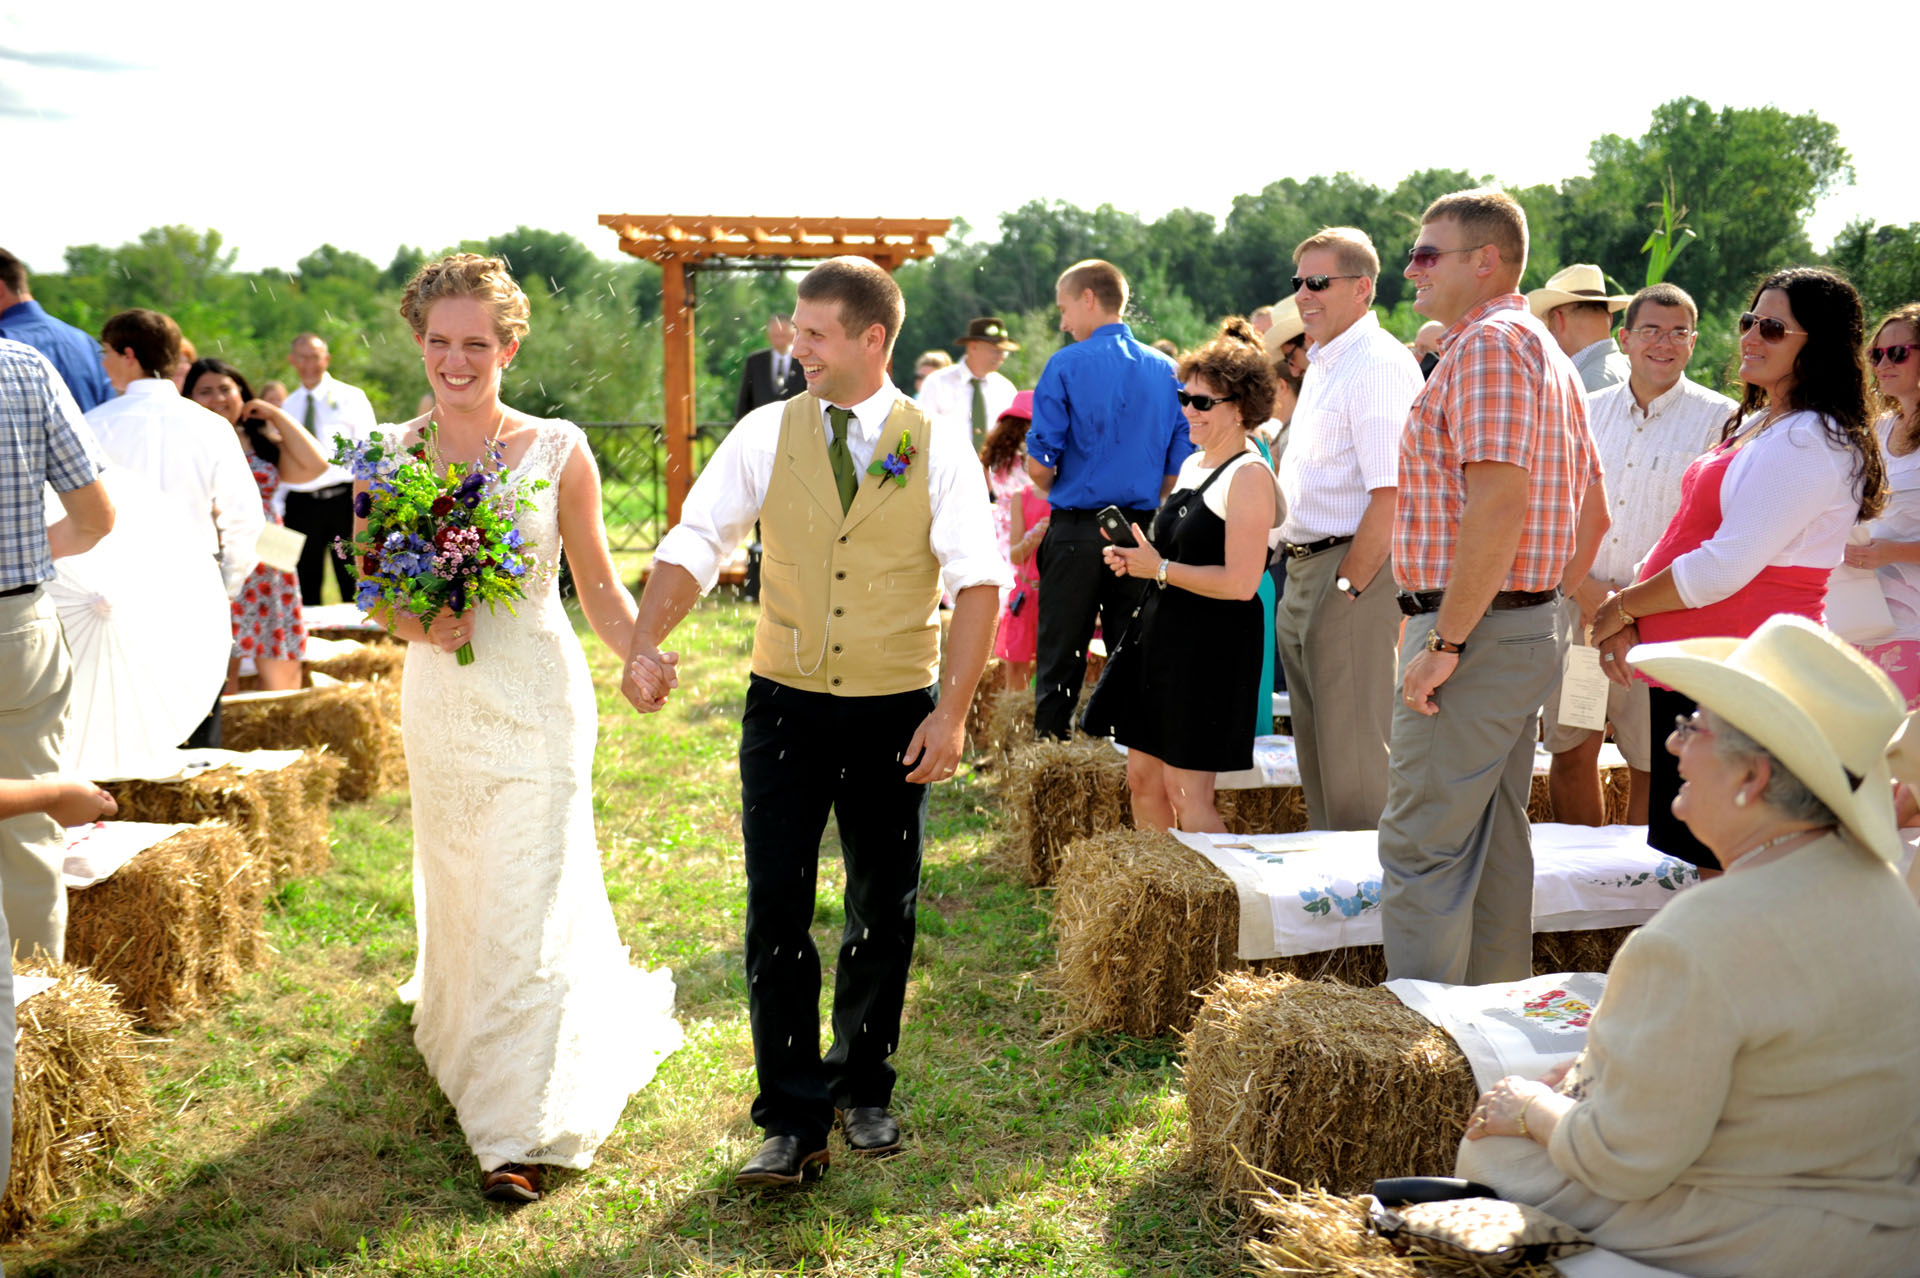 Michigan country wedding wedding photographer took a nice candid of the couple as the are pelted with rice at their country farm wedding in Michigan.